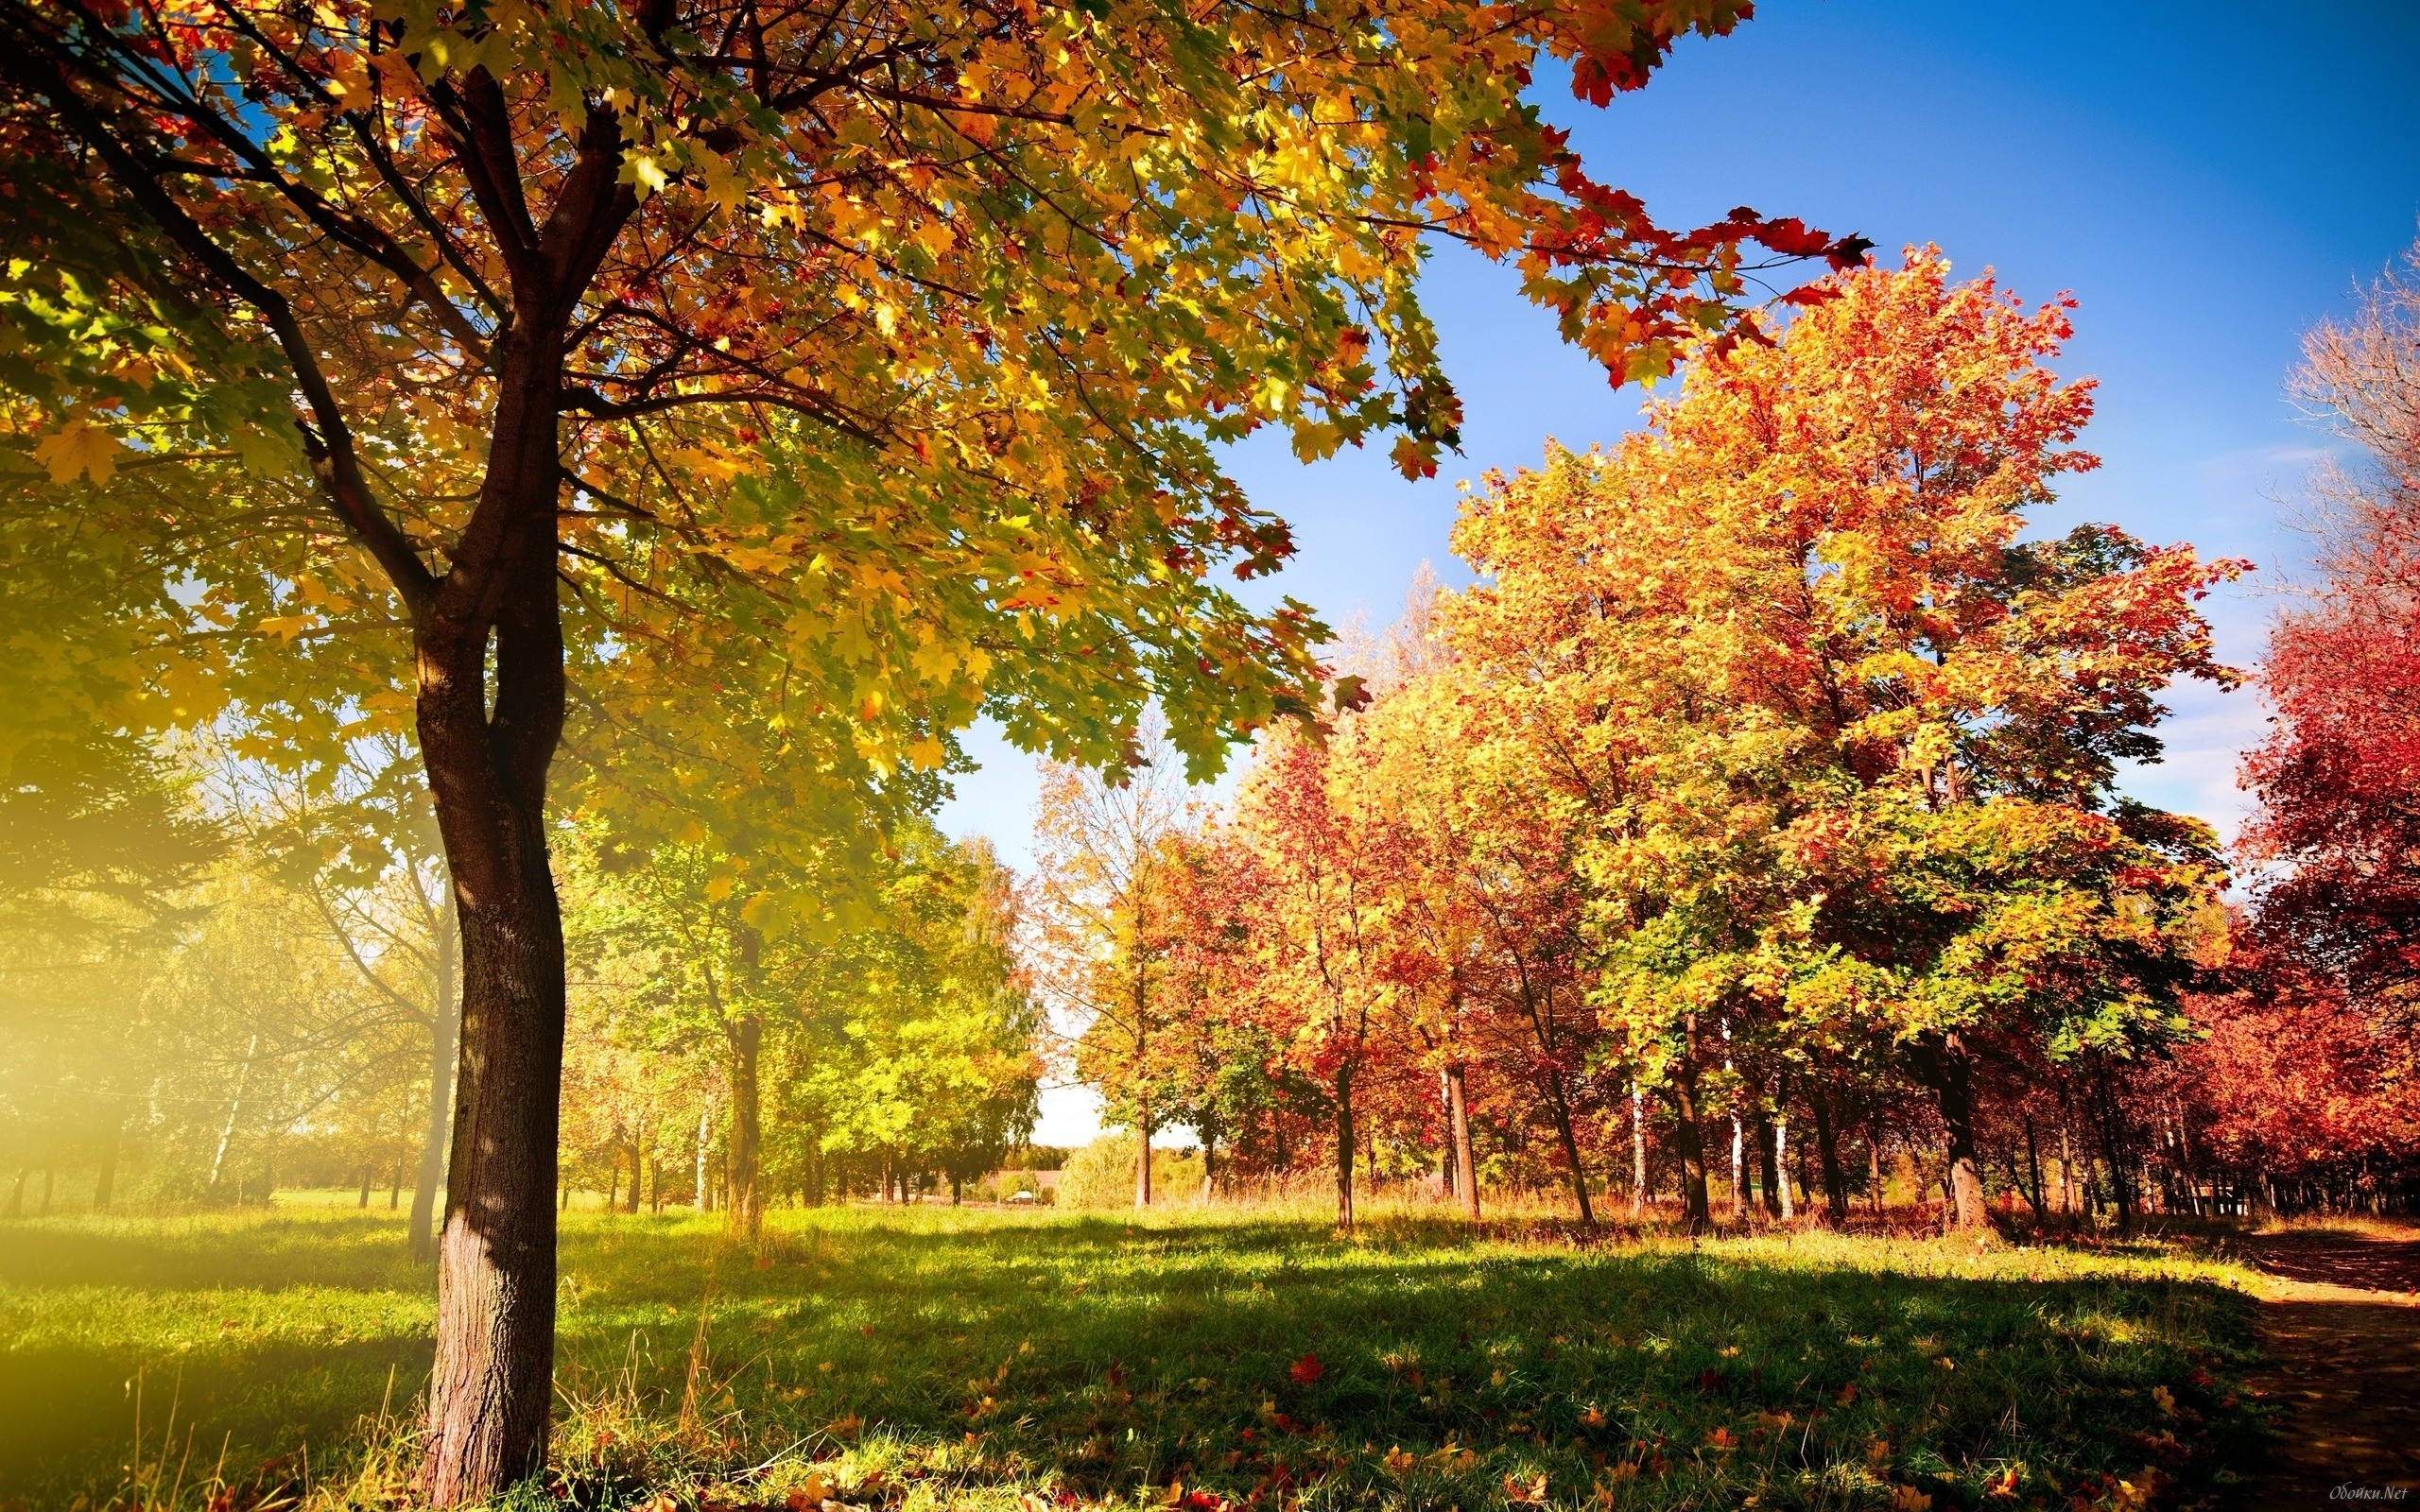 Early Fall Desktop Wallpapers 43 images 2560x1600